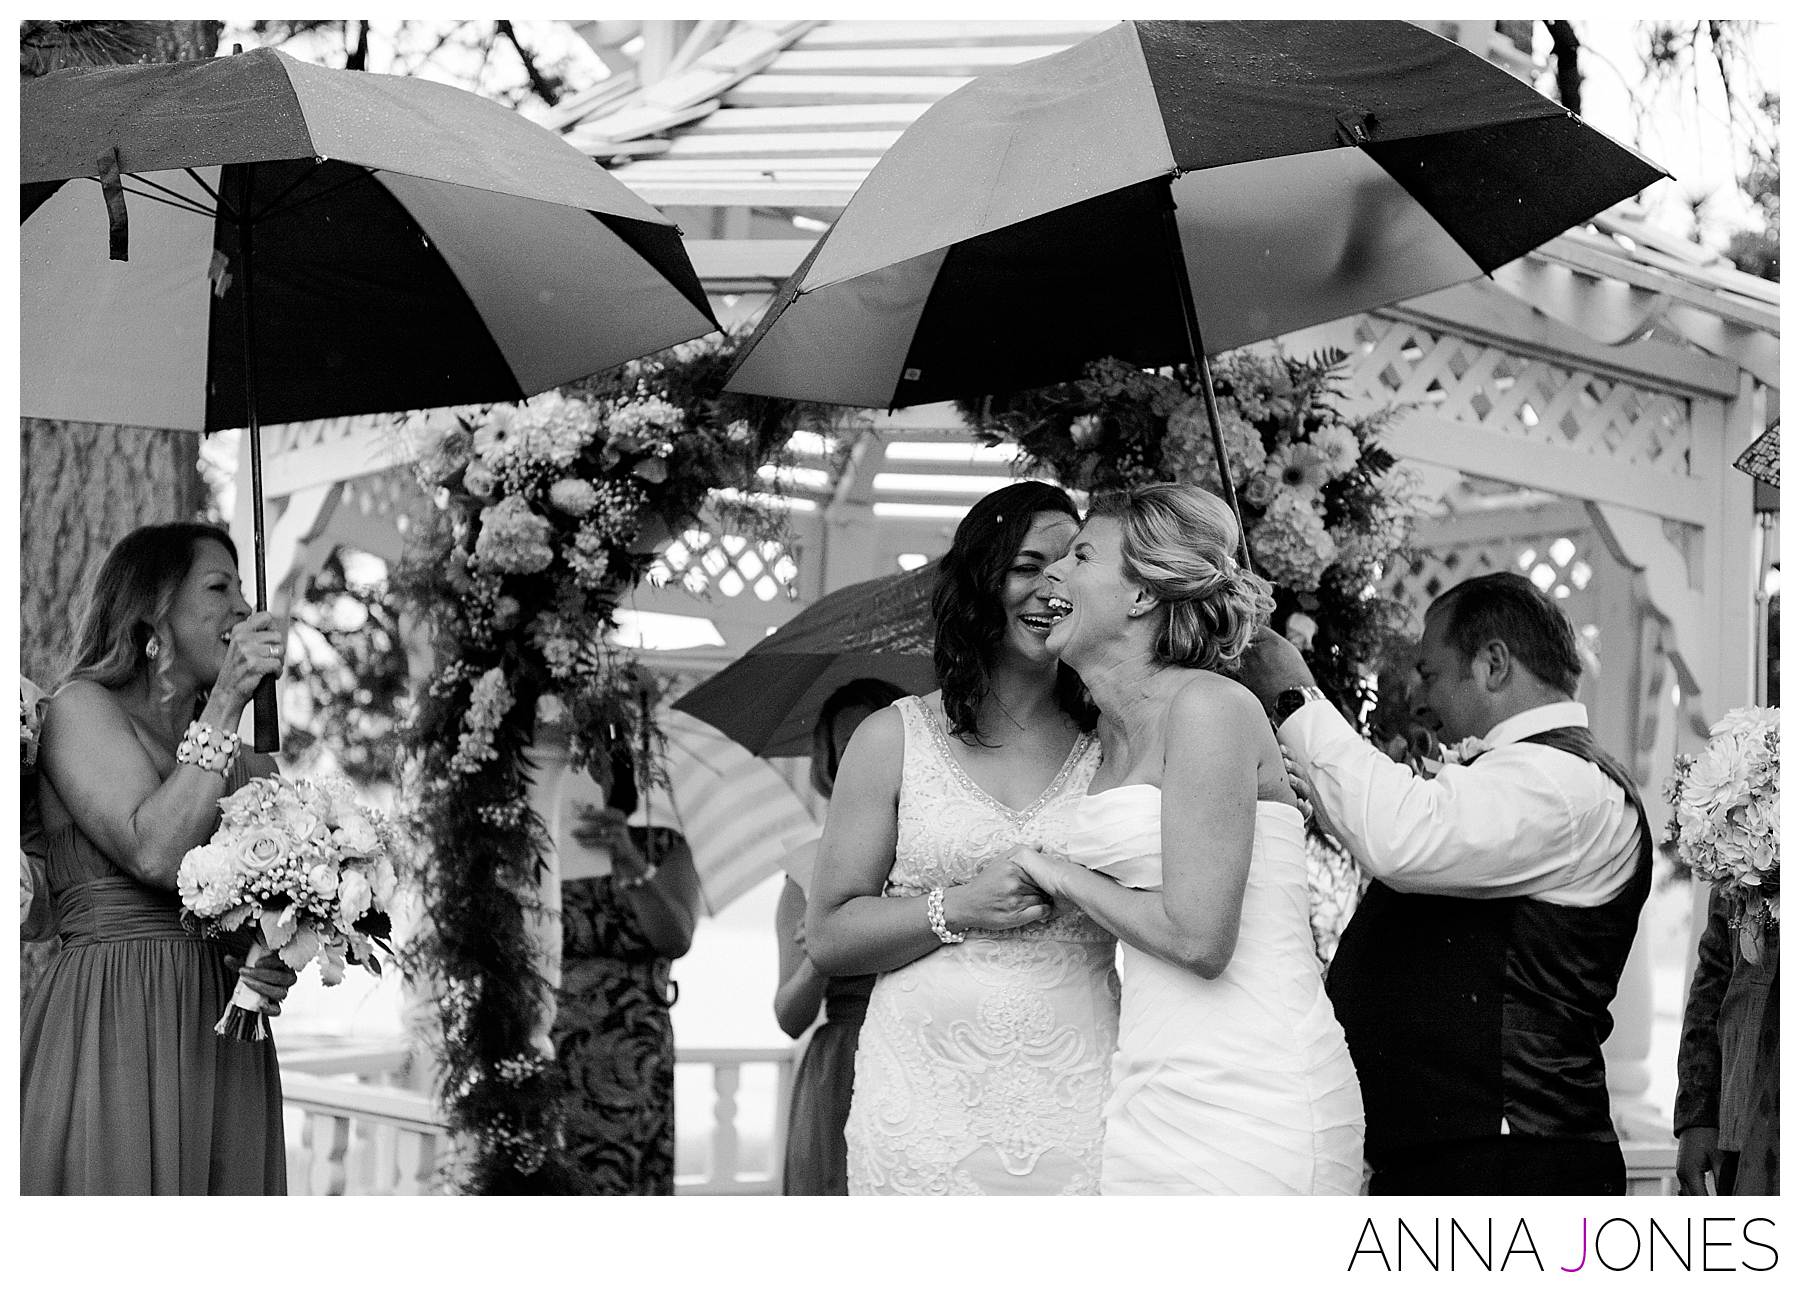 DIFAZIO | Anna Jones Wedding Photography